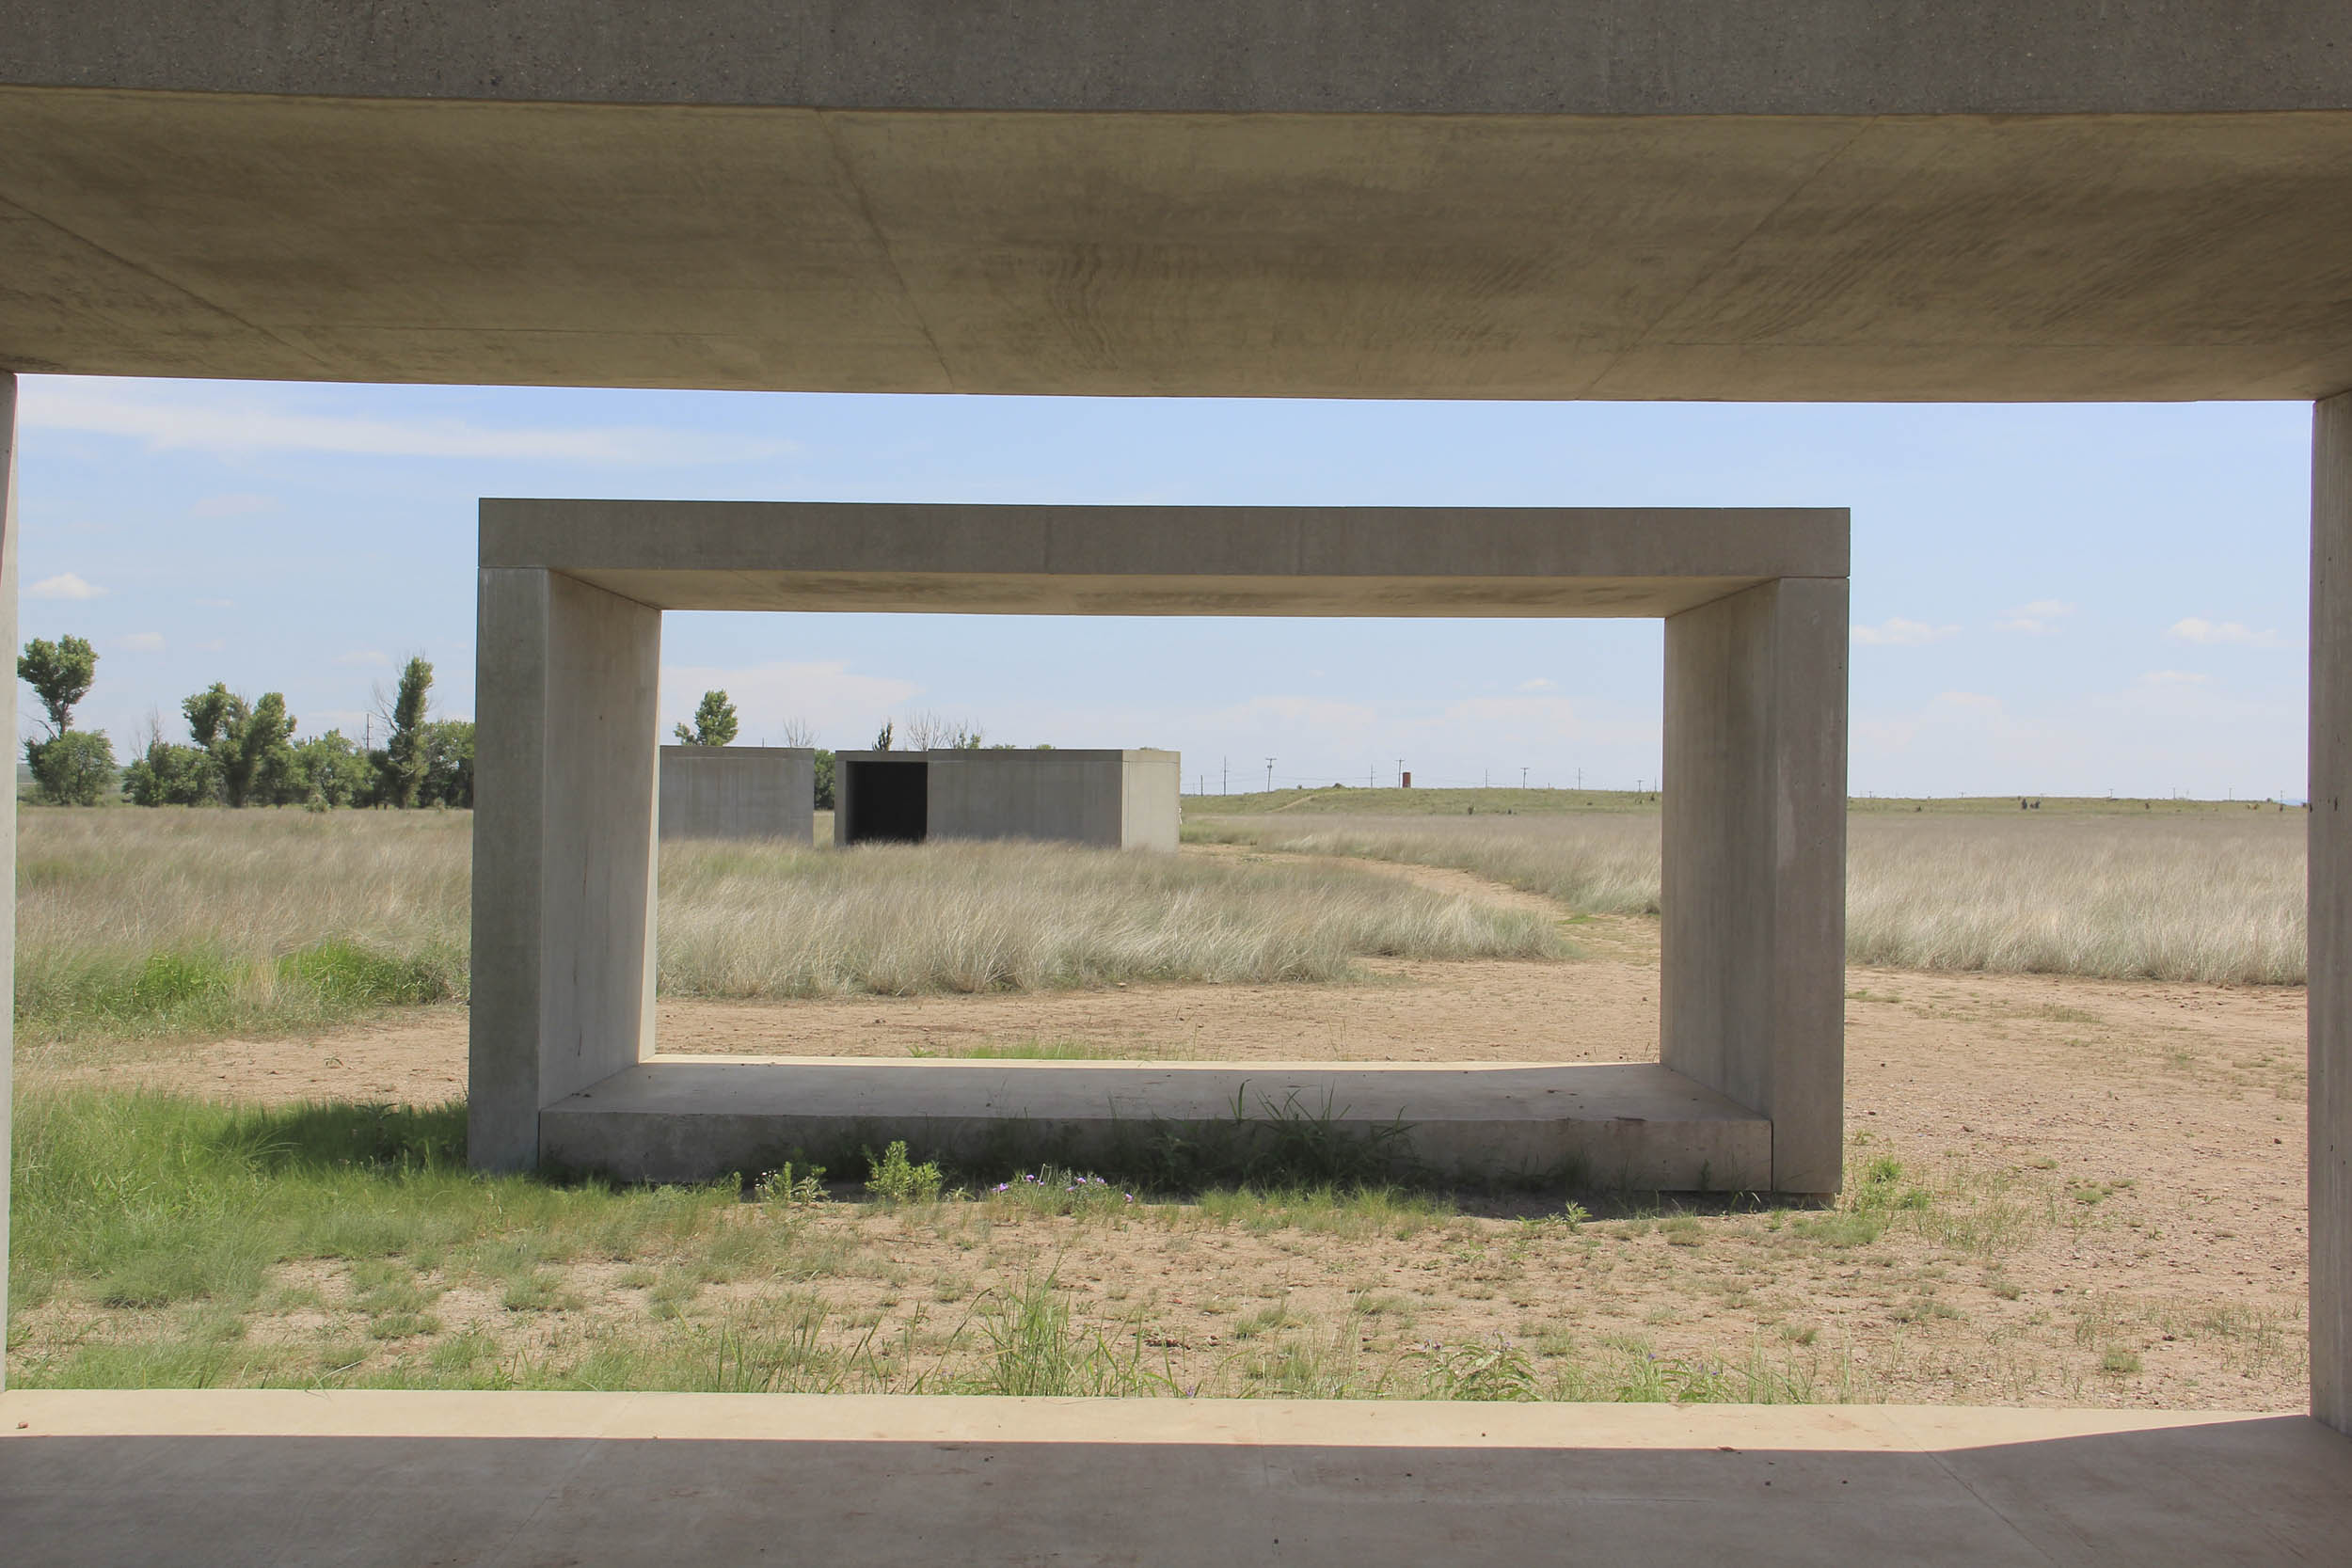 small town in Chihuahuan Desert with concrete sculptures